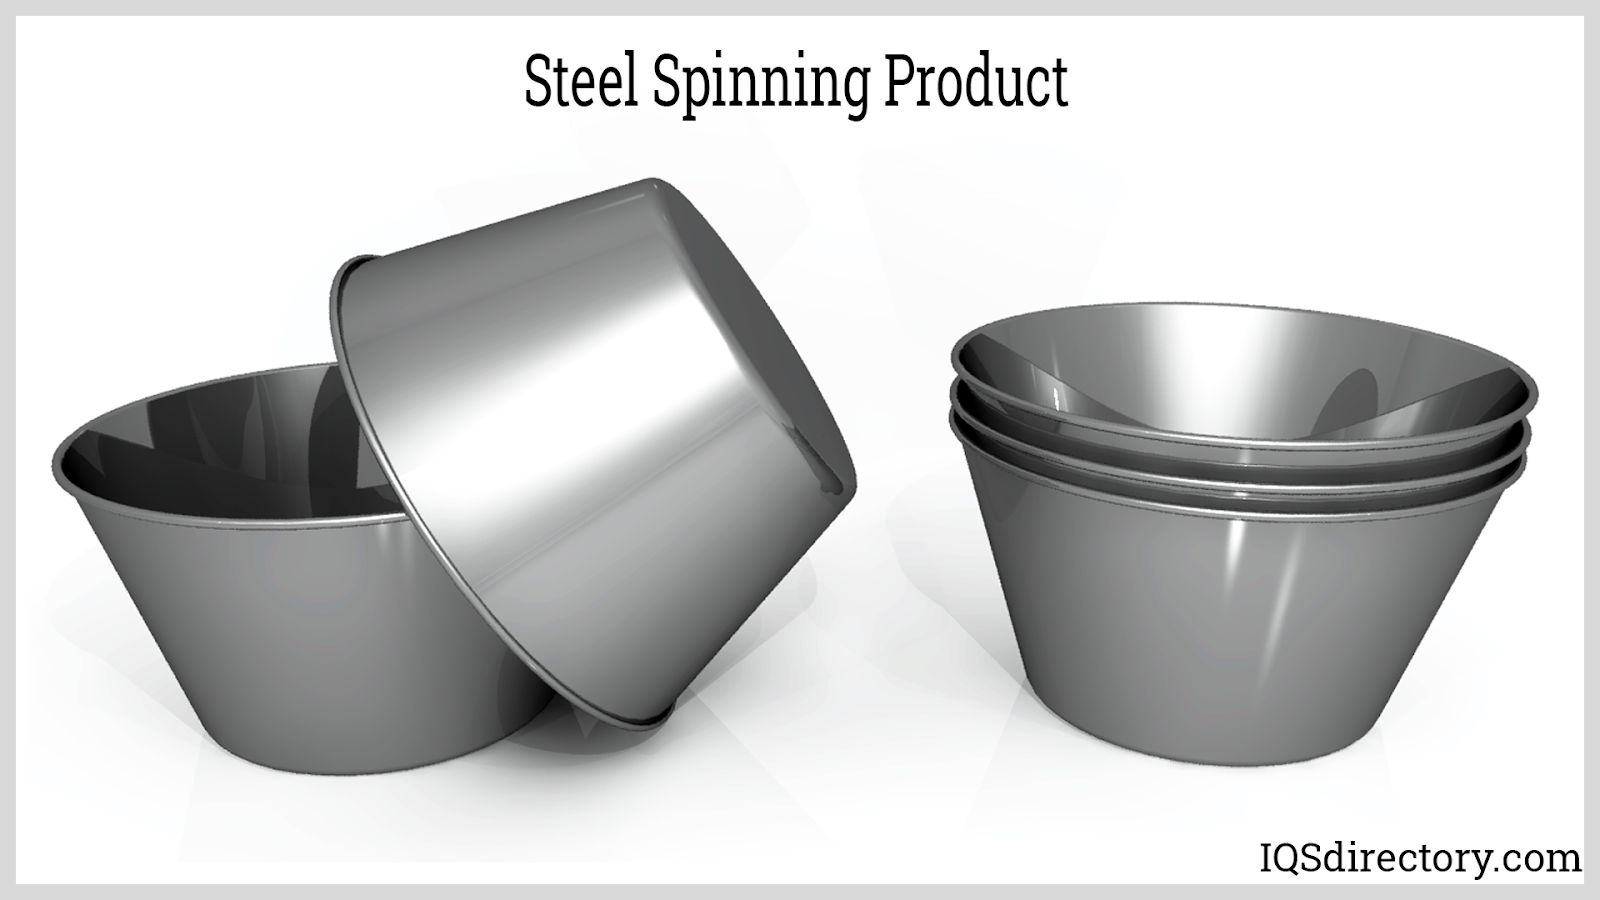 Steel Spinning Product